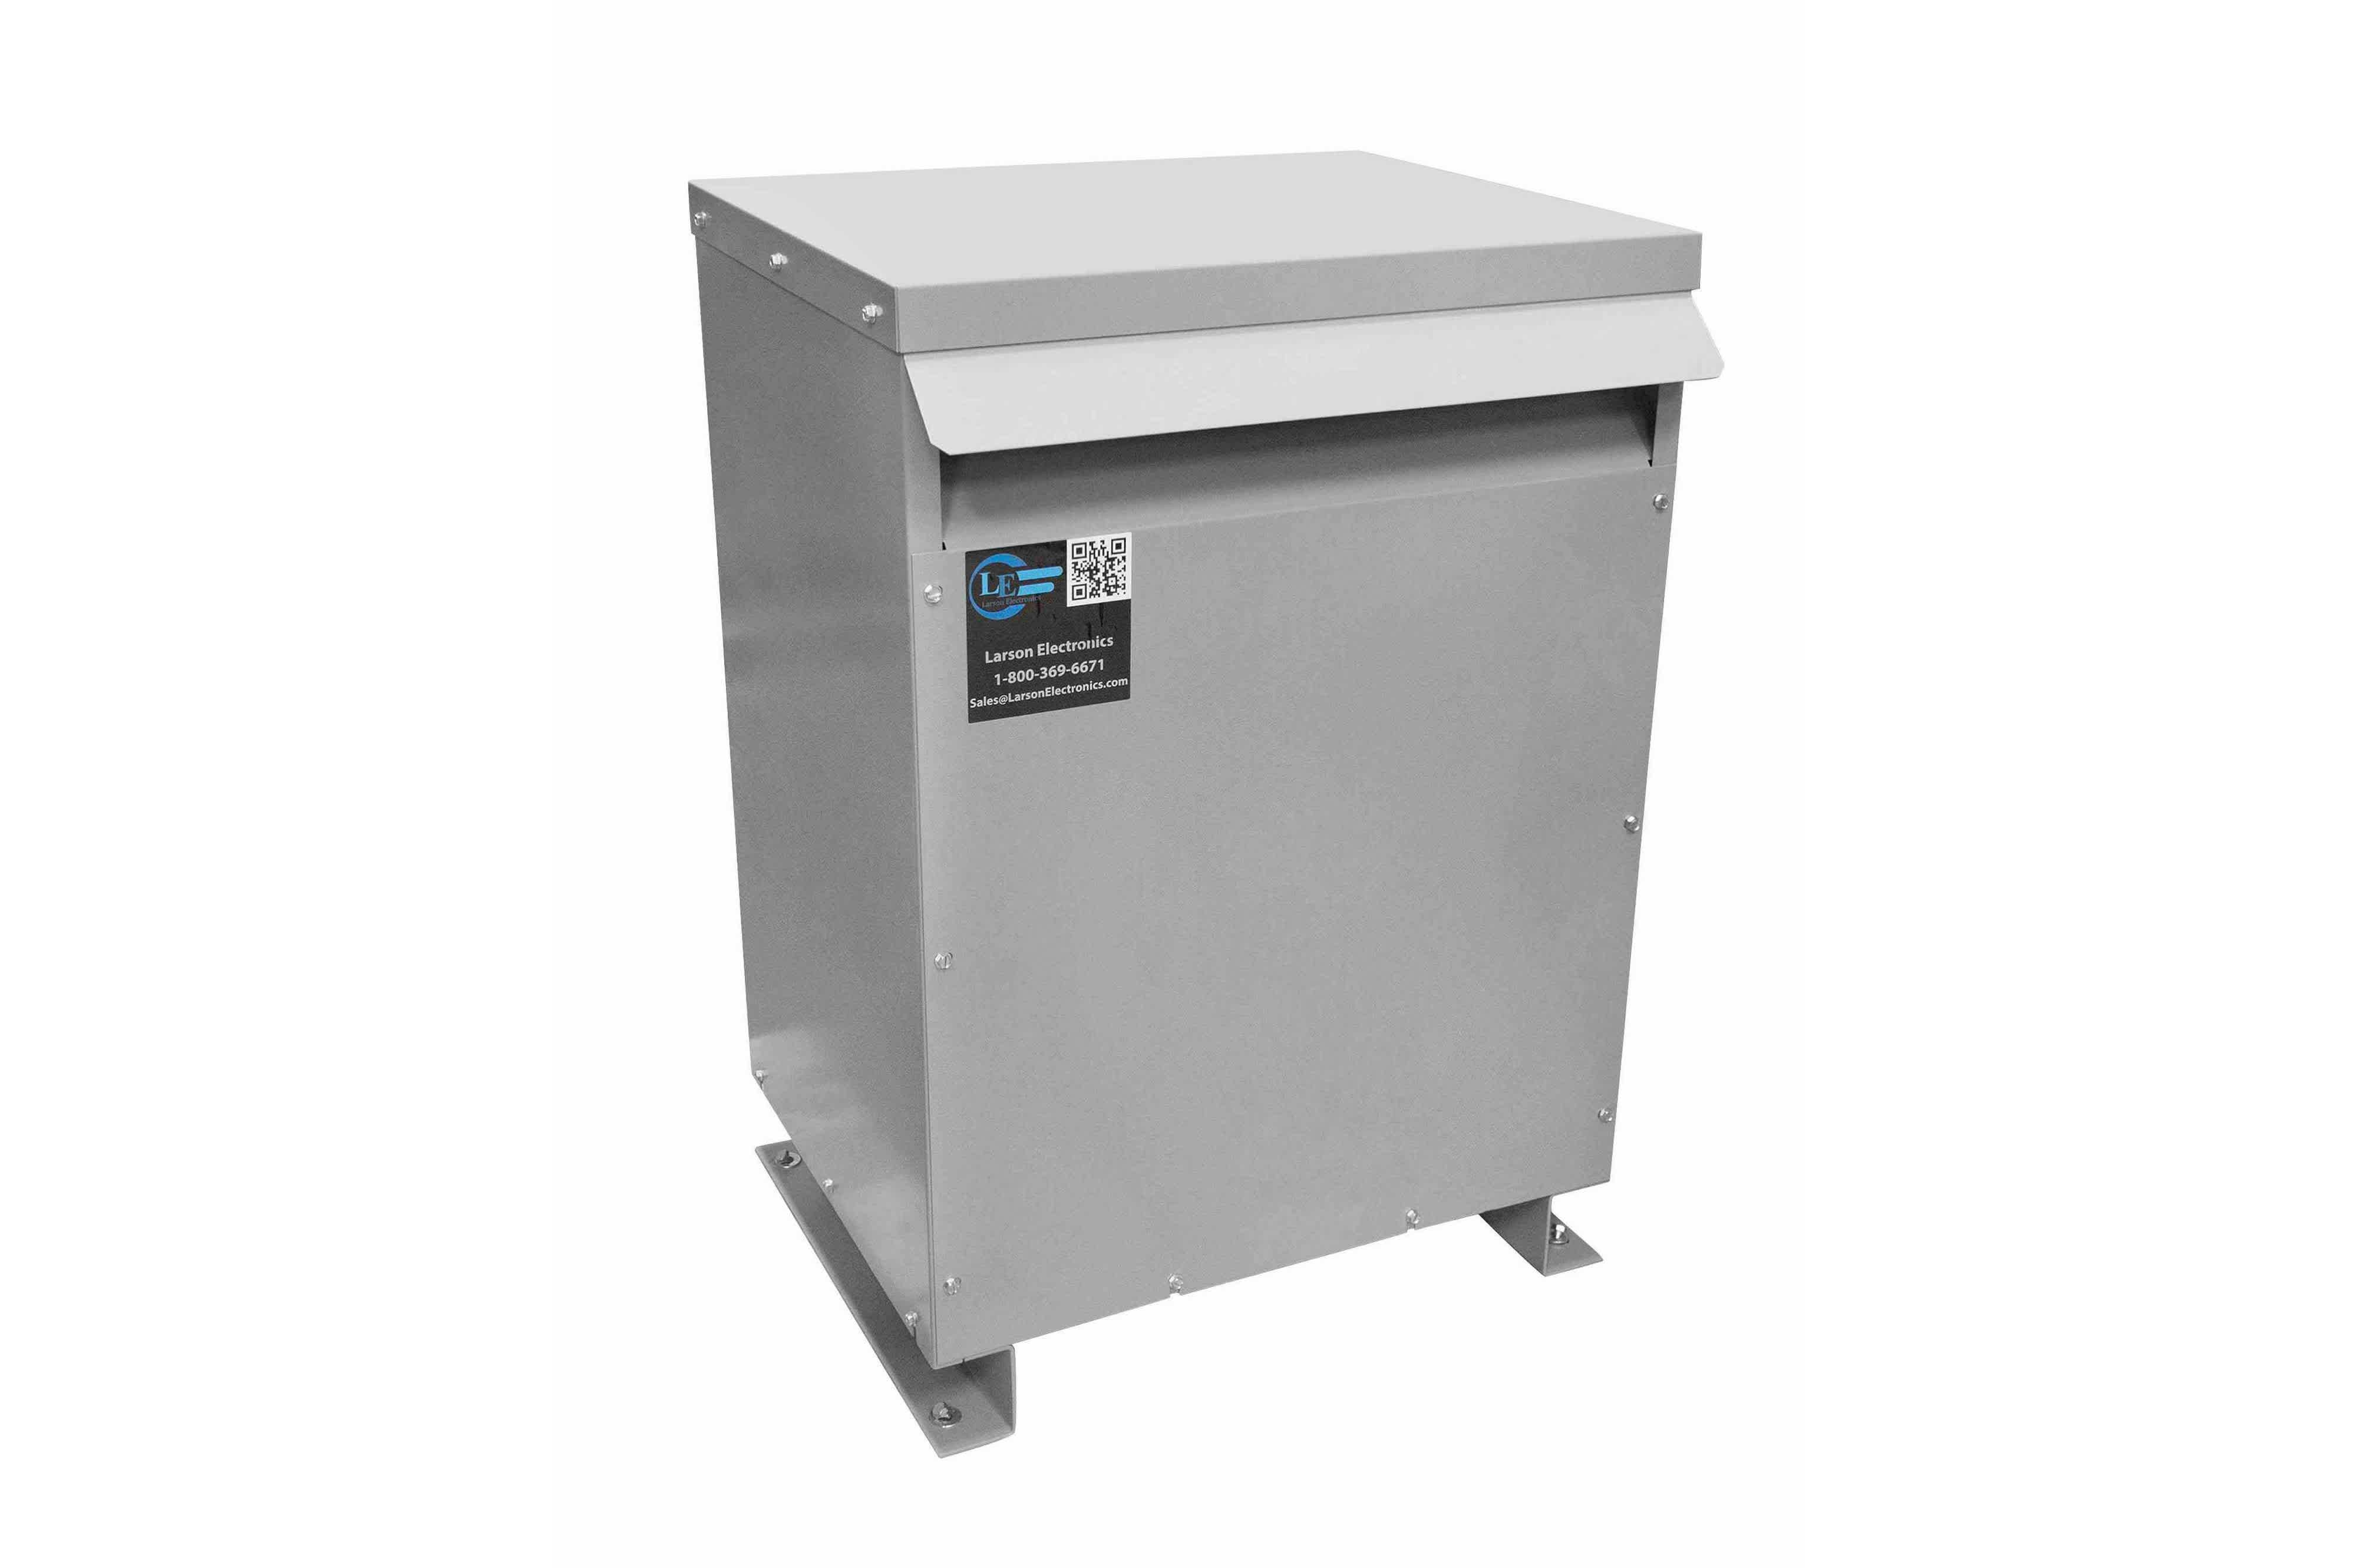 800 kVA 3PH Isolation Transformer, 208V Wye Primary, 240V/120 Delta Secondary, N3R, Ventilated, 60 Hz